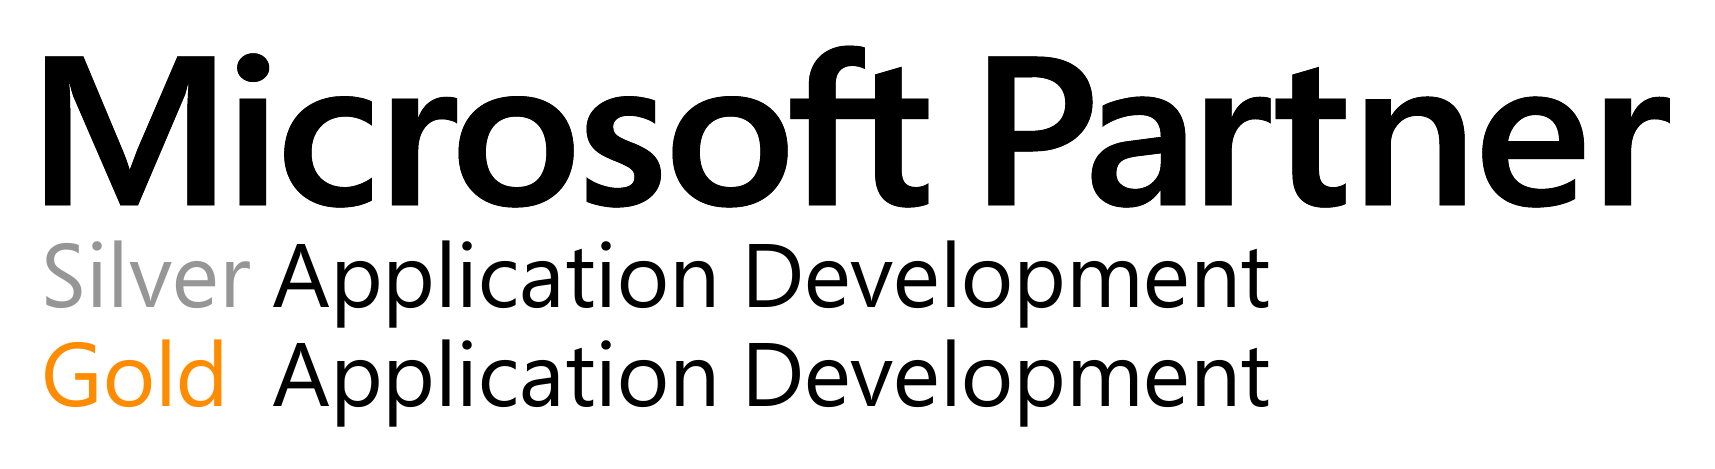 Microsoft Silver/Gold Application Development